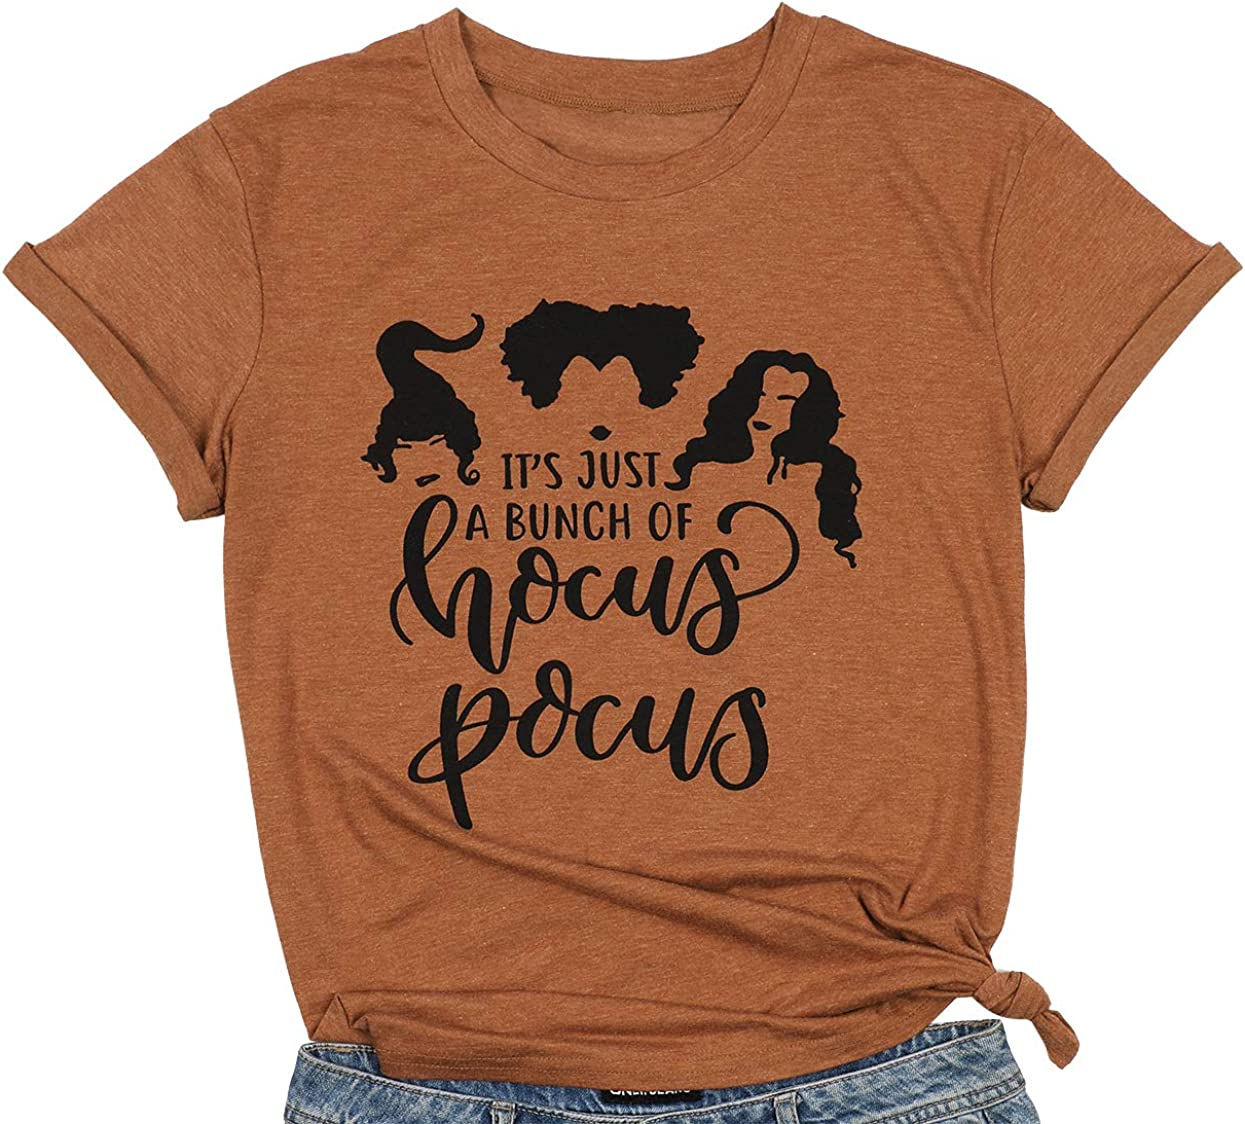 JEALLY Its Just A Bunch of Hocus Pocus T-Shirt Funny Graphic Tee Shirt for Women Halloween T Shirts